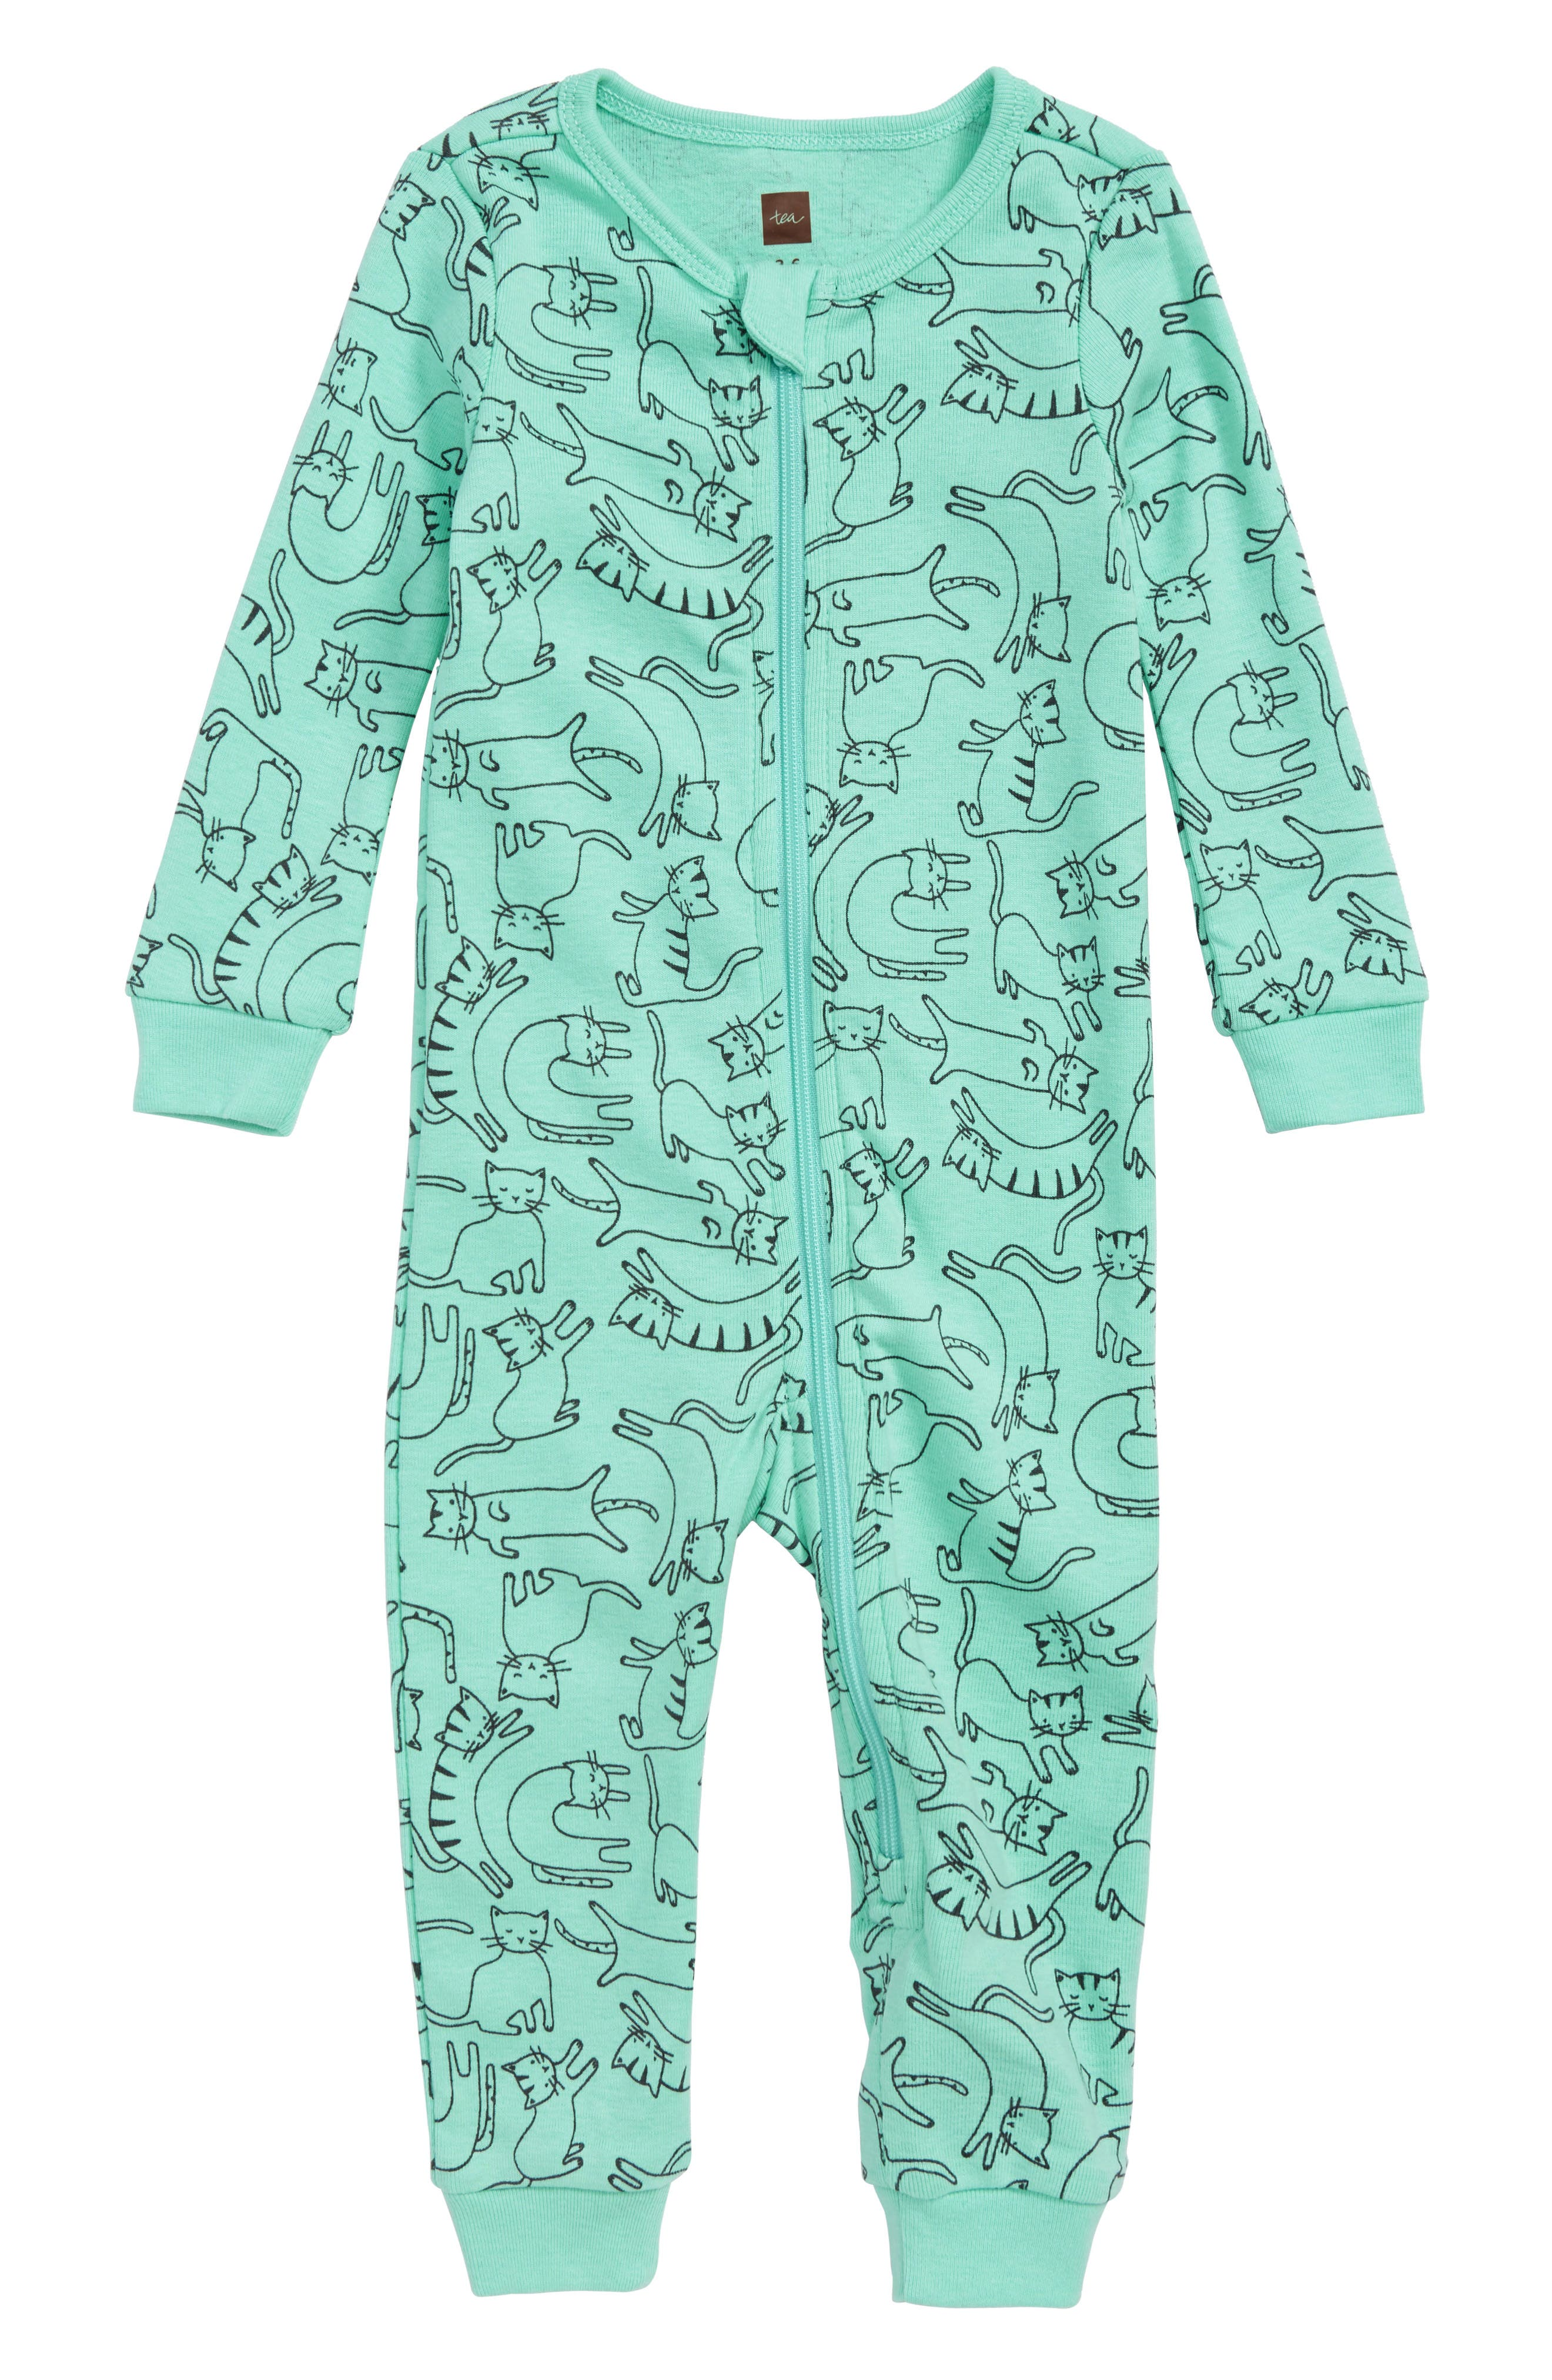 Printed Fitted One-Piece Pajamas,                             Main thumbnail 1, color,                             374